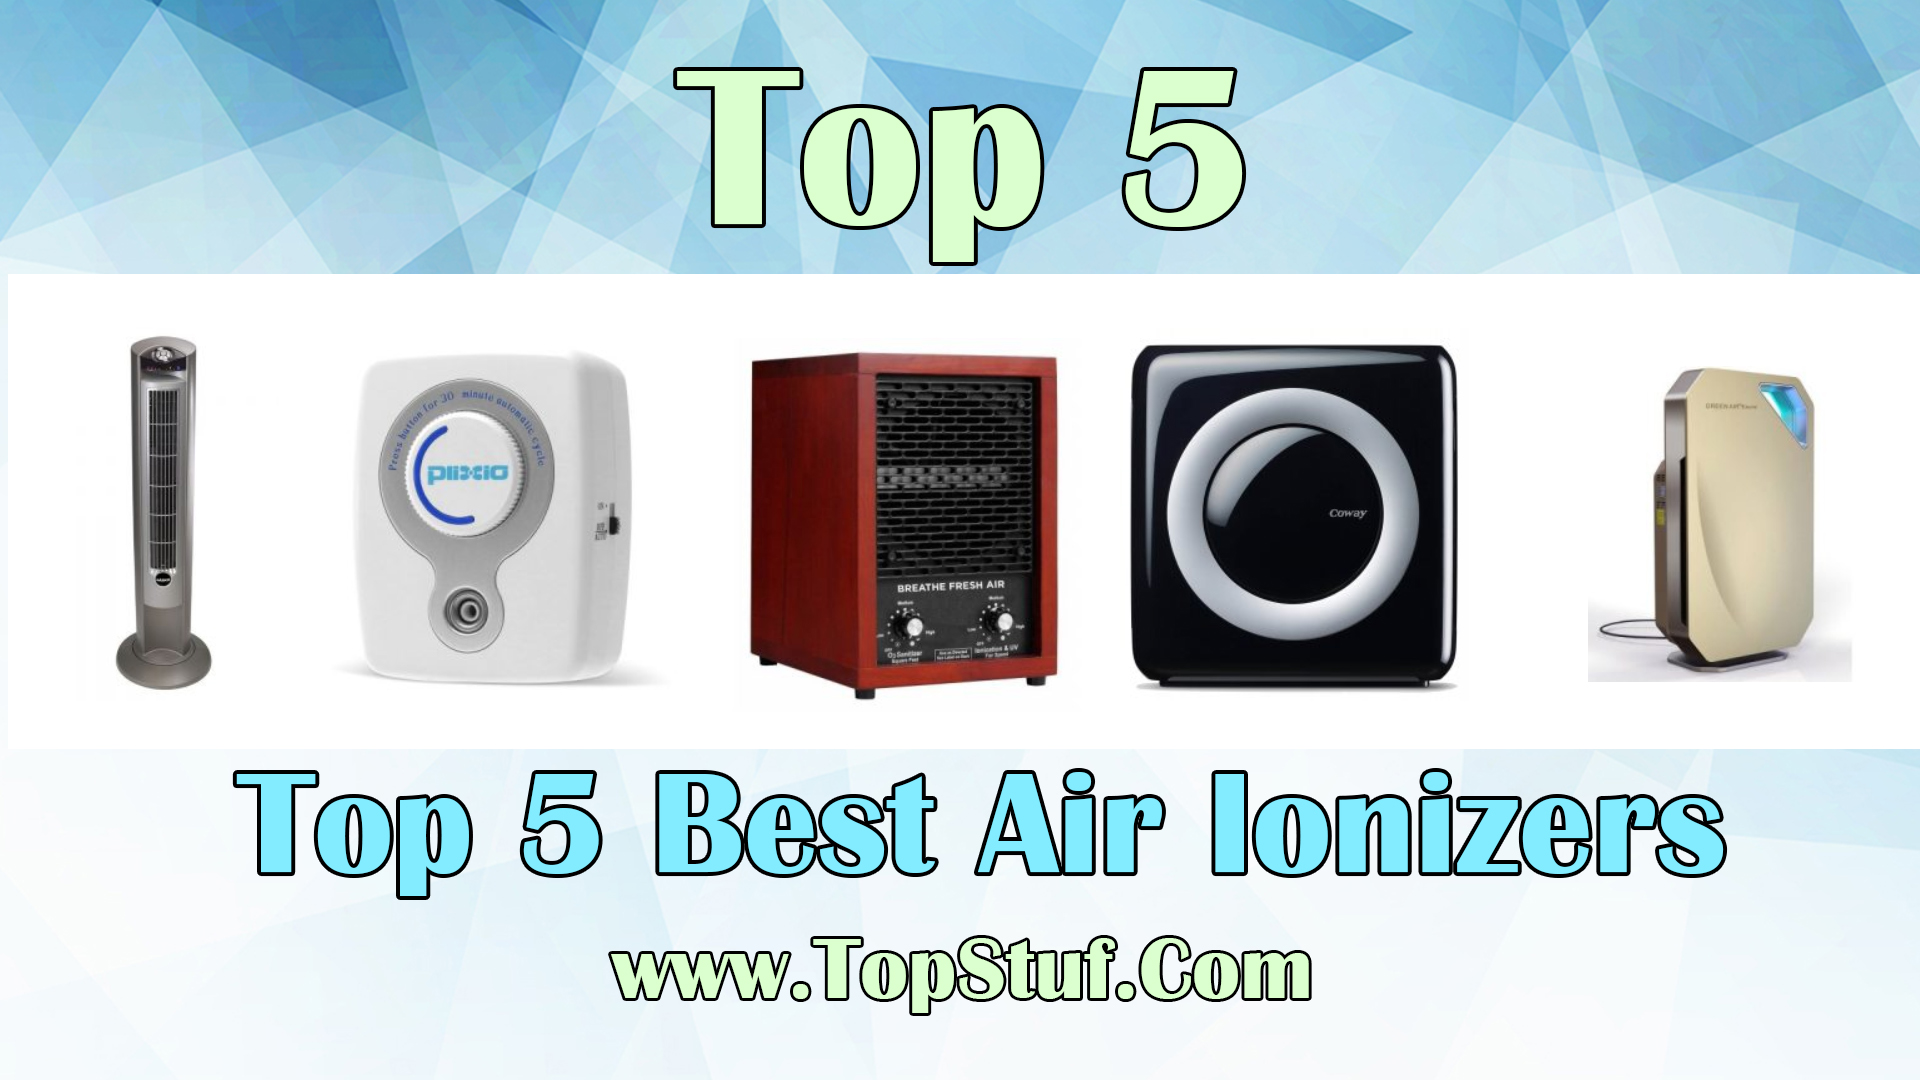 Top 5 Best Air Ionizers